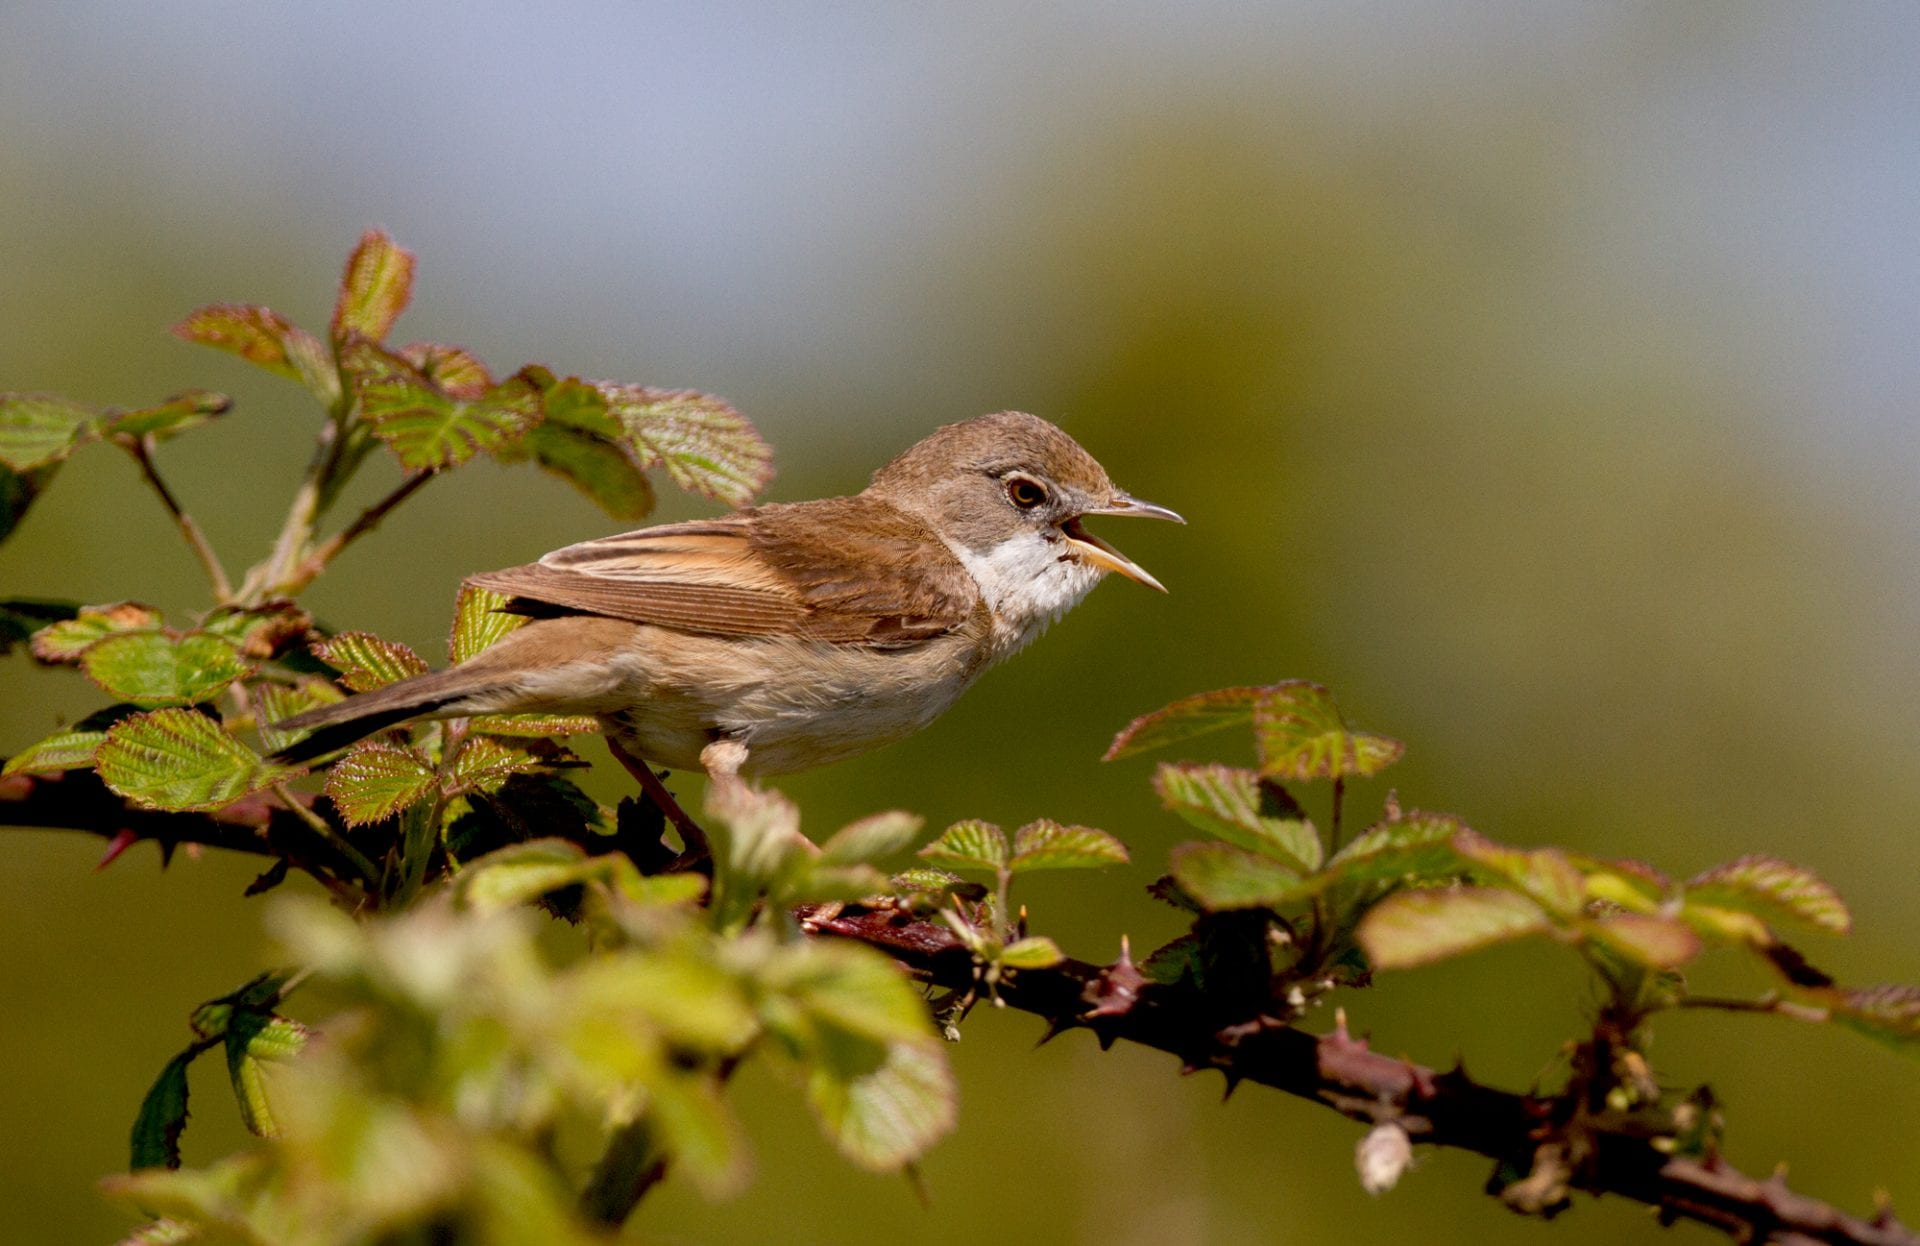 whitethroat-perched-on-bramble-singing